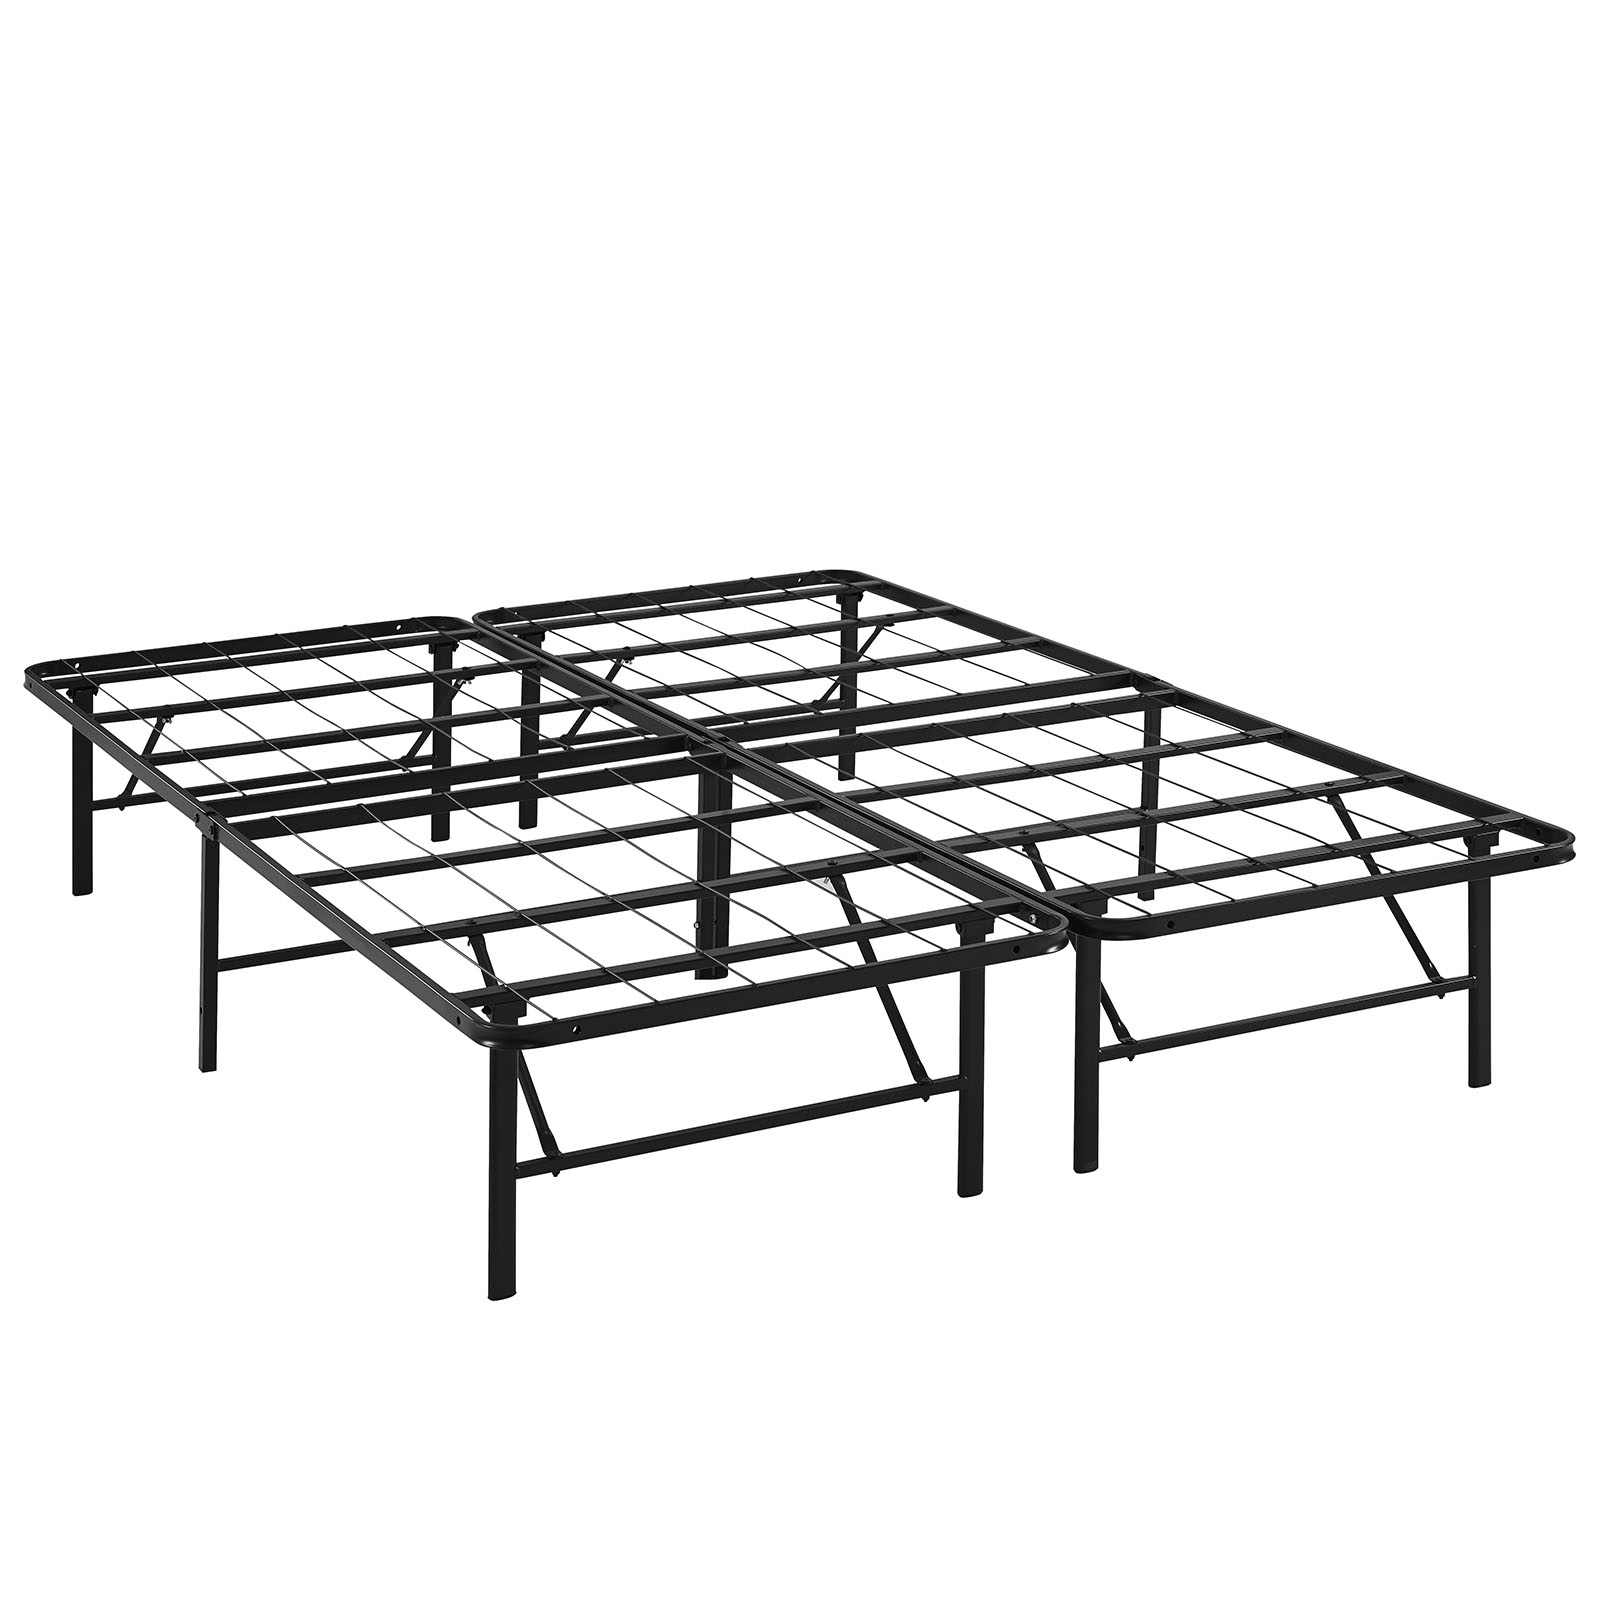 Modern Contemporary Urban Design Bedroom Full Size Platform Bed Frame, Brown, Metal Steel